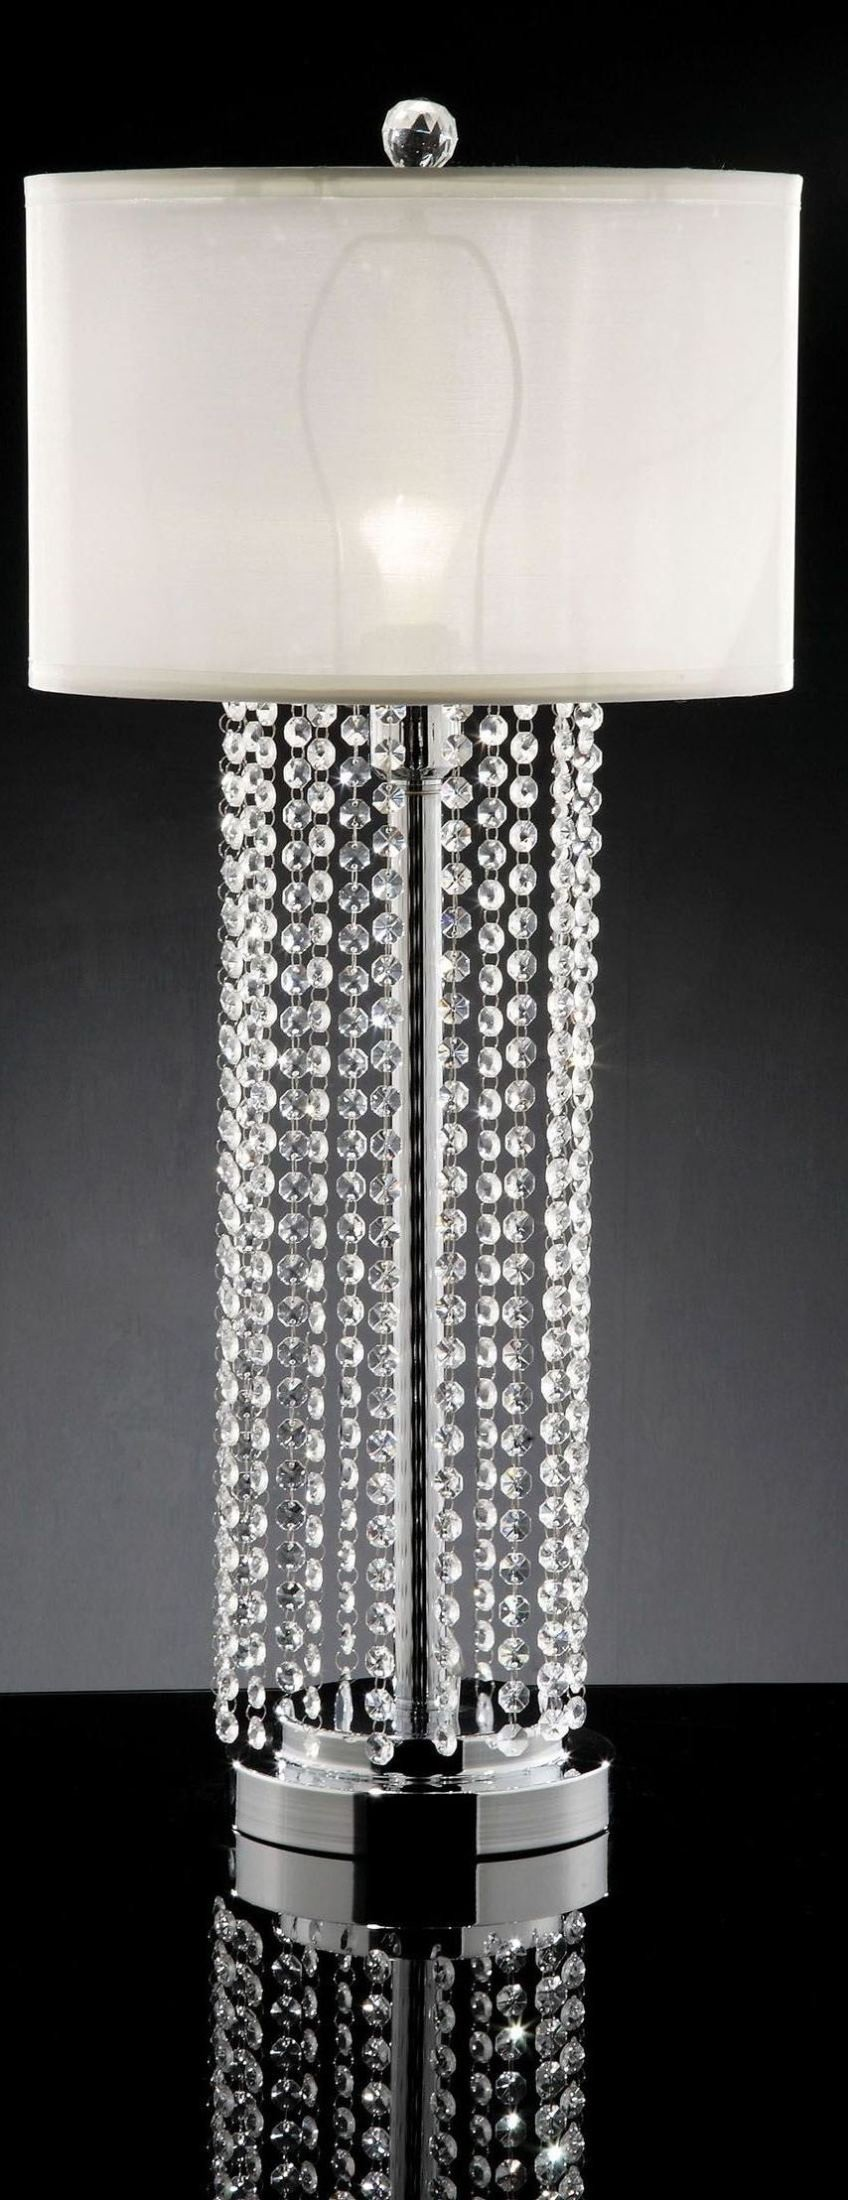 Claris Hanging Crystal Table Lamp from Furniture of